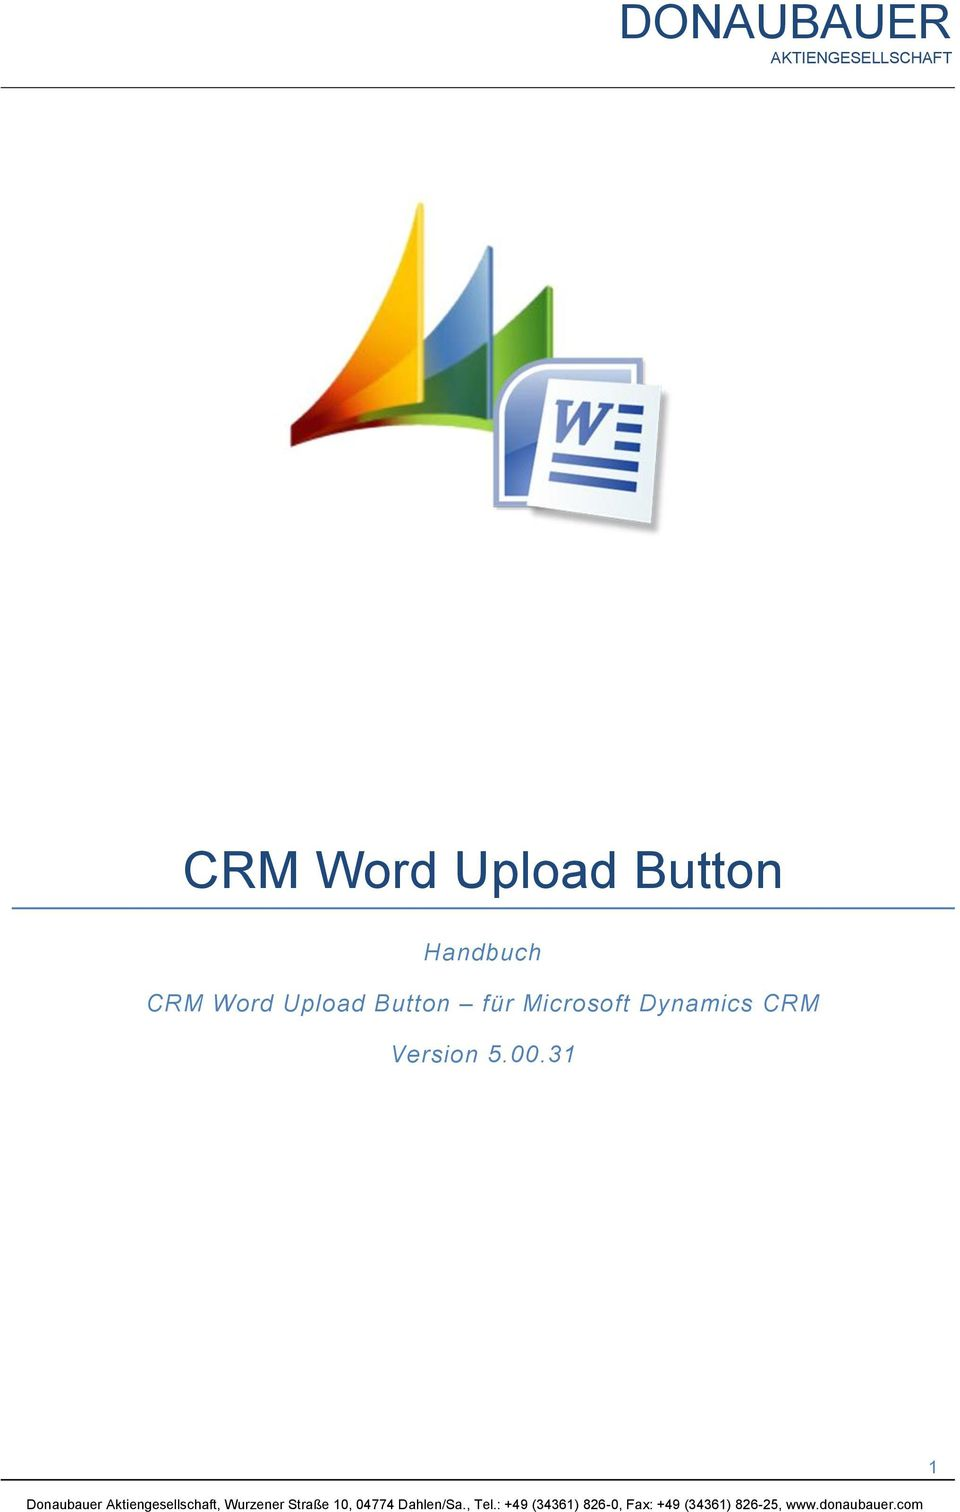 Dynamics CRM Version 5.